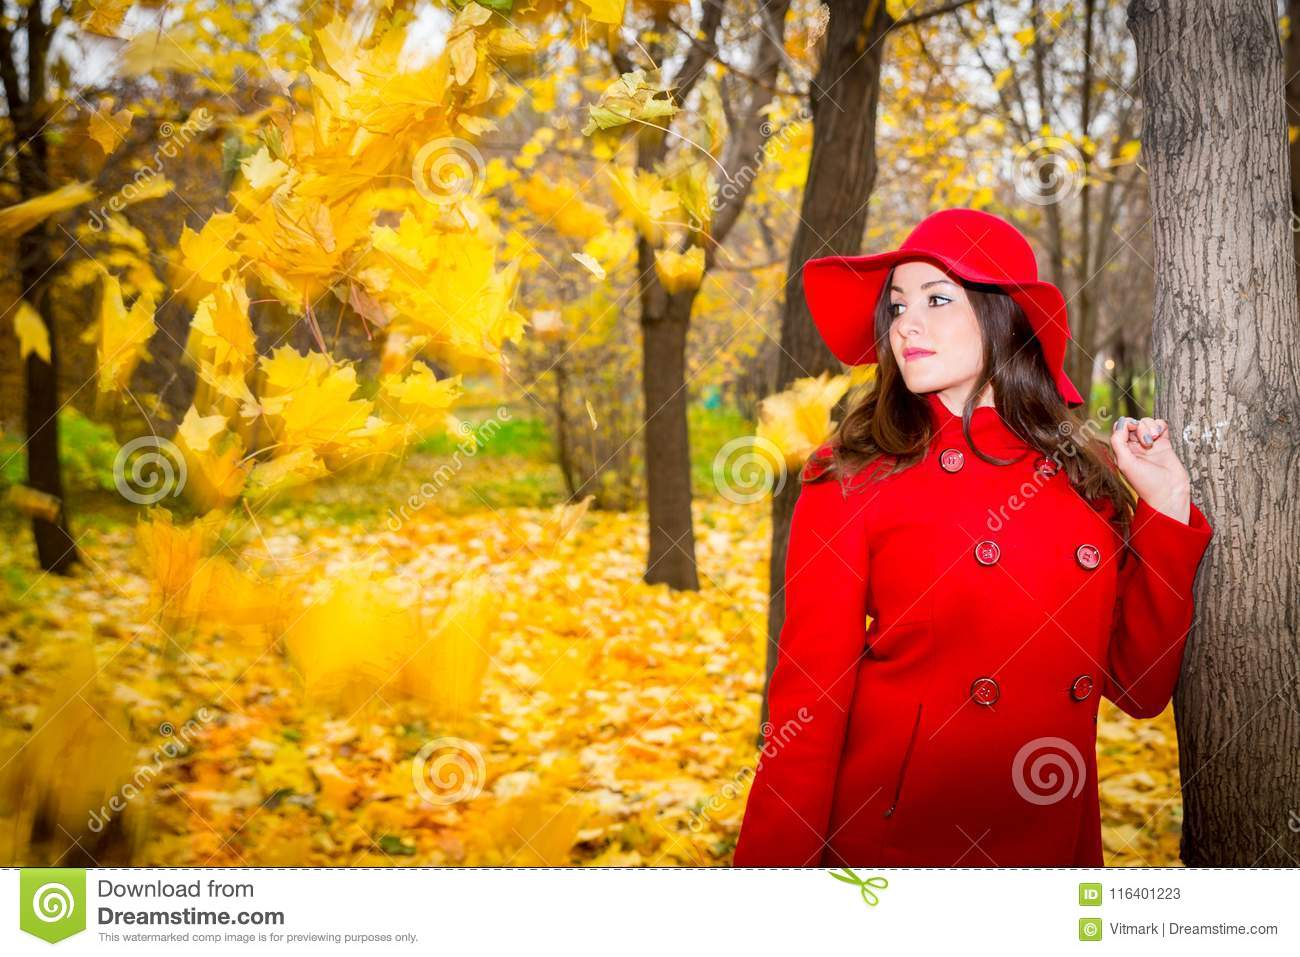 Autumn portrait of beautiful woman over yellow leaves while walking in the park at fall. Positive emotions and happiness concept.